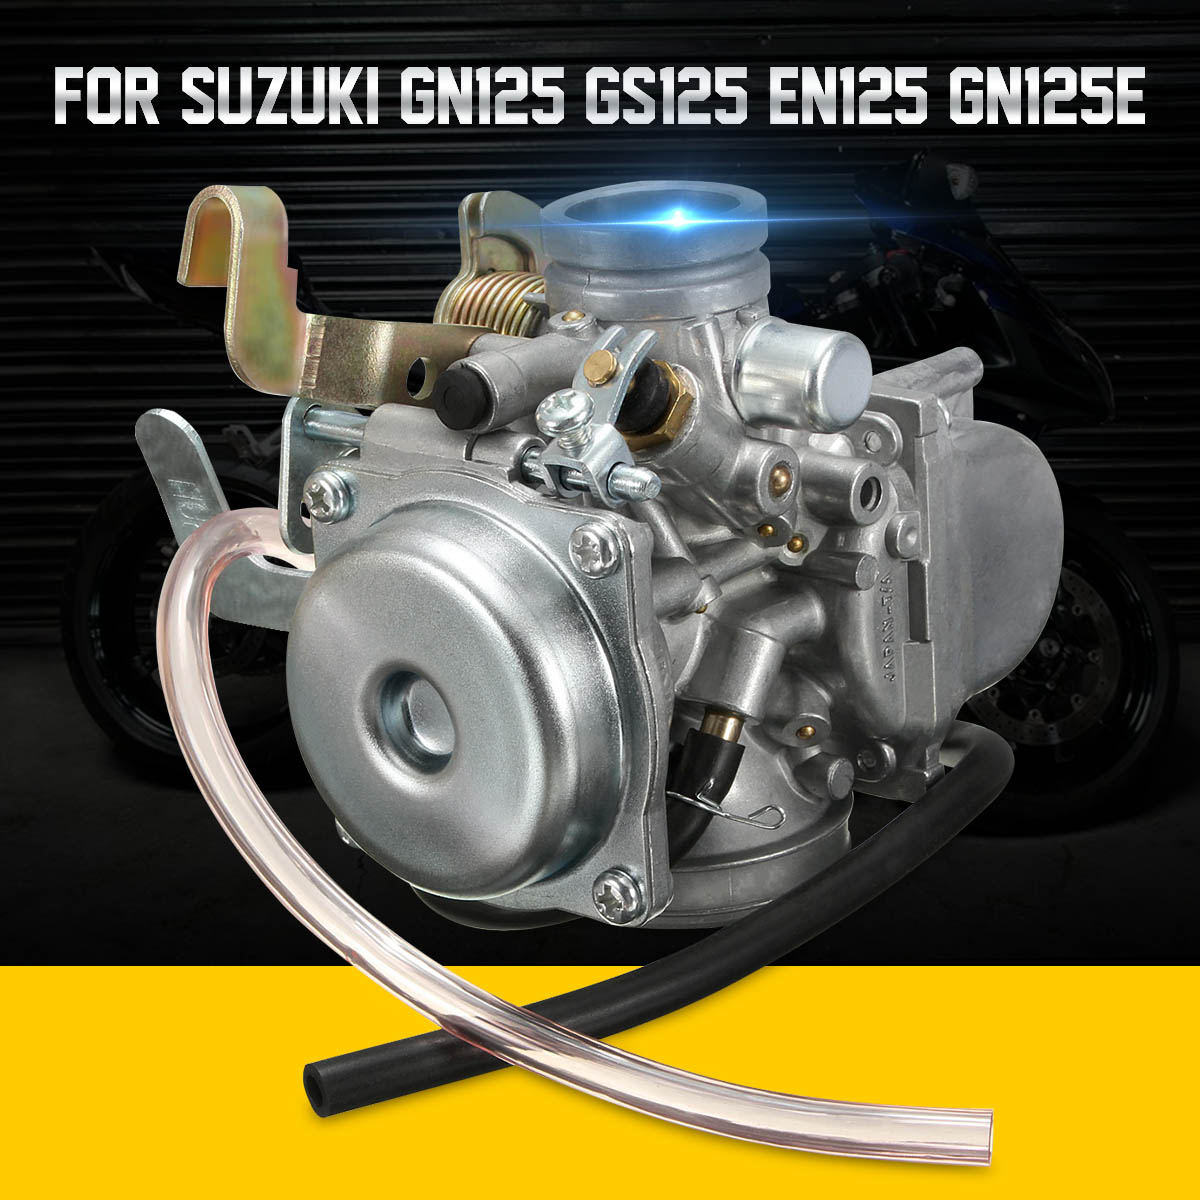 Motorcycle Carburettor Carburetor Carb For Suzuki GN125 1994 - 2001 GS125 EN125 GN125E 26mm Motorbike Part image